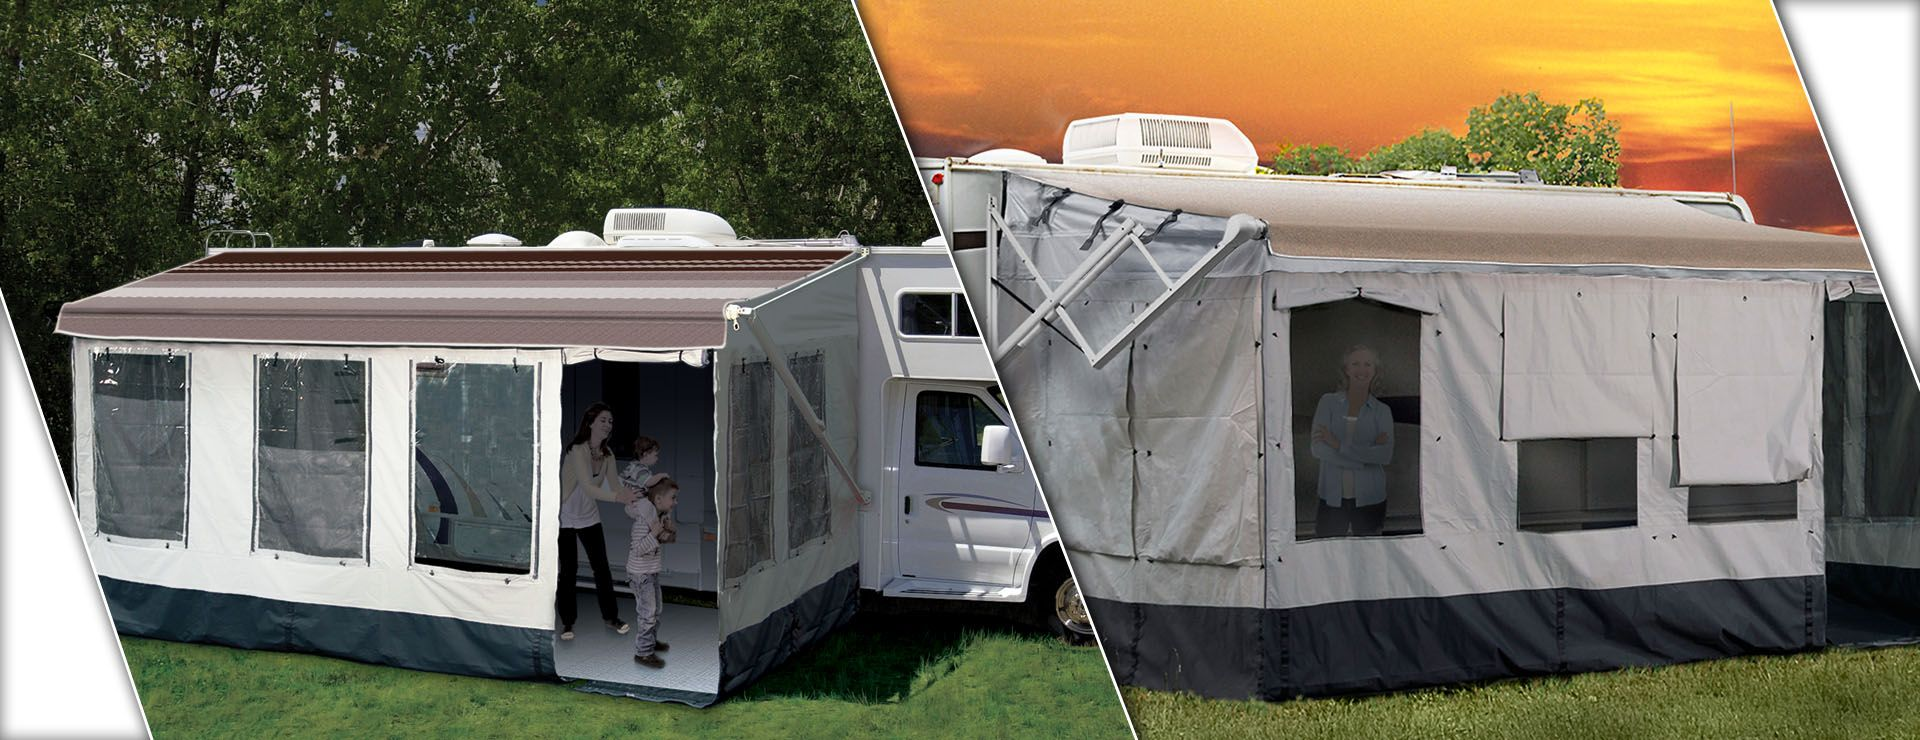 Wonderful RV Awnings, Patio Awnings U0026 More   Carefree Of Colorado